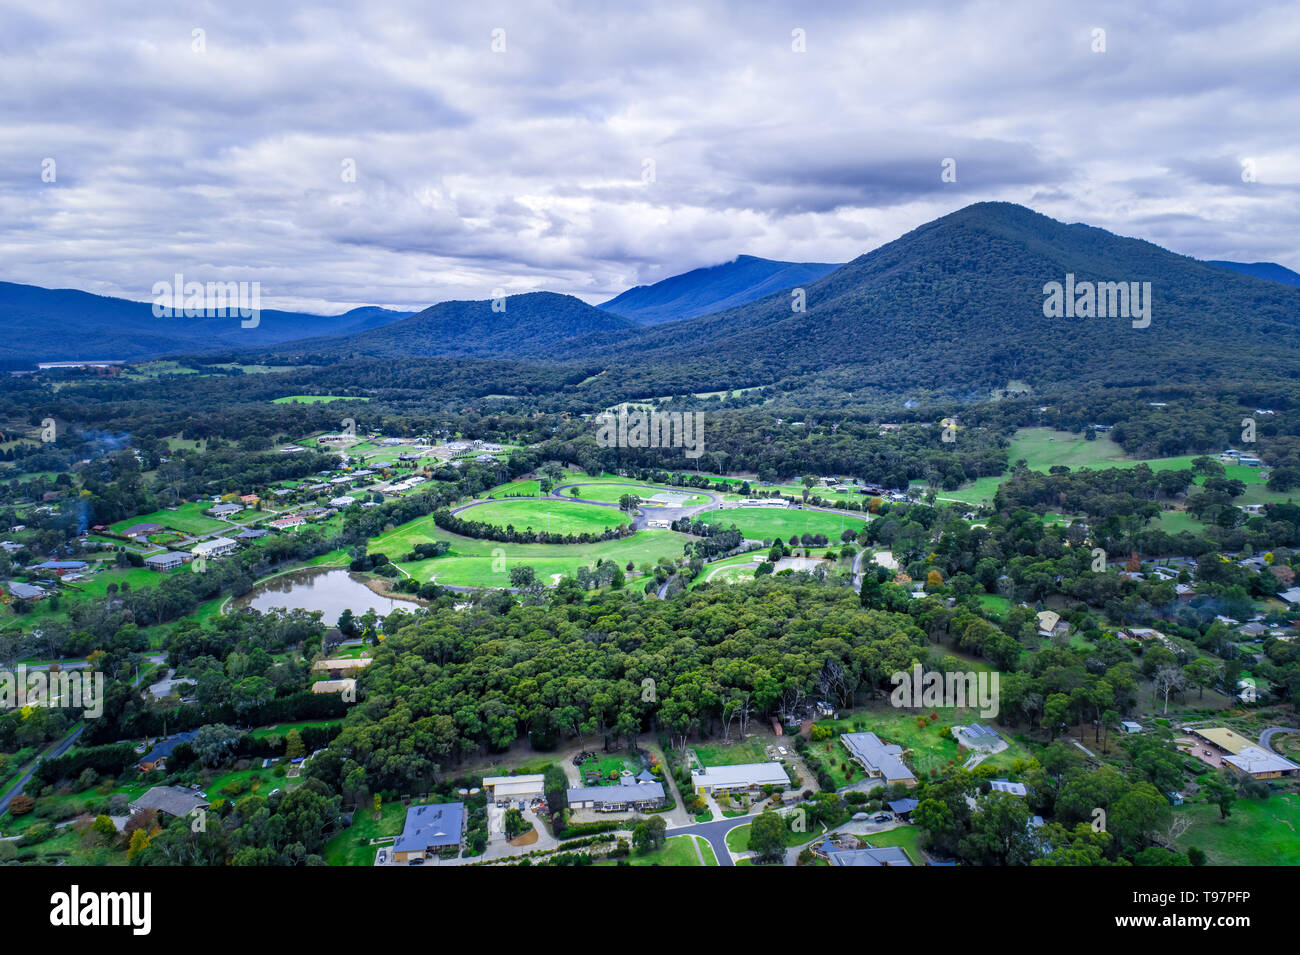 Scenic rural landscape of houses among grasslands with trees and mountains. Healesville, Victoria, Australia - Stock Image